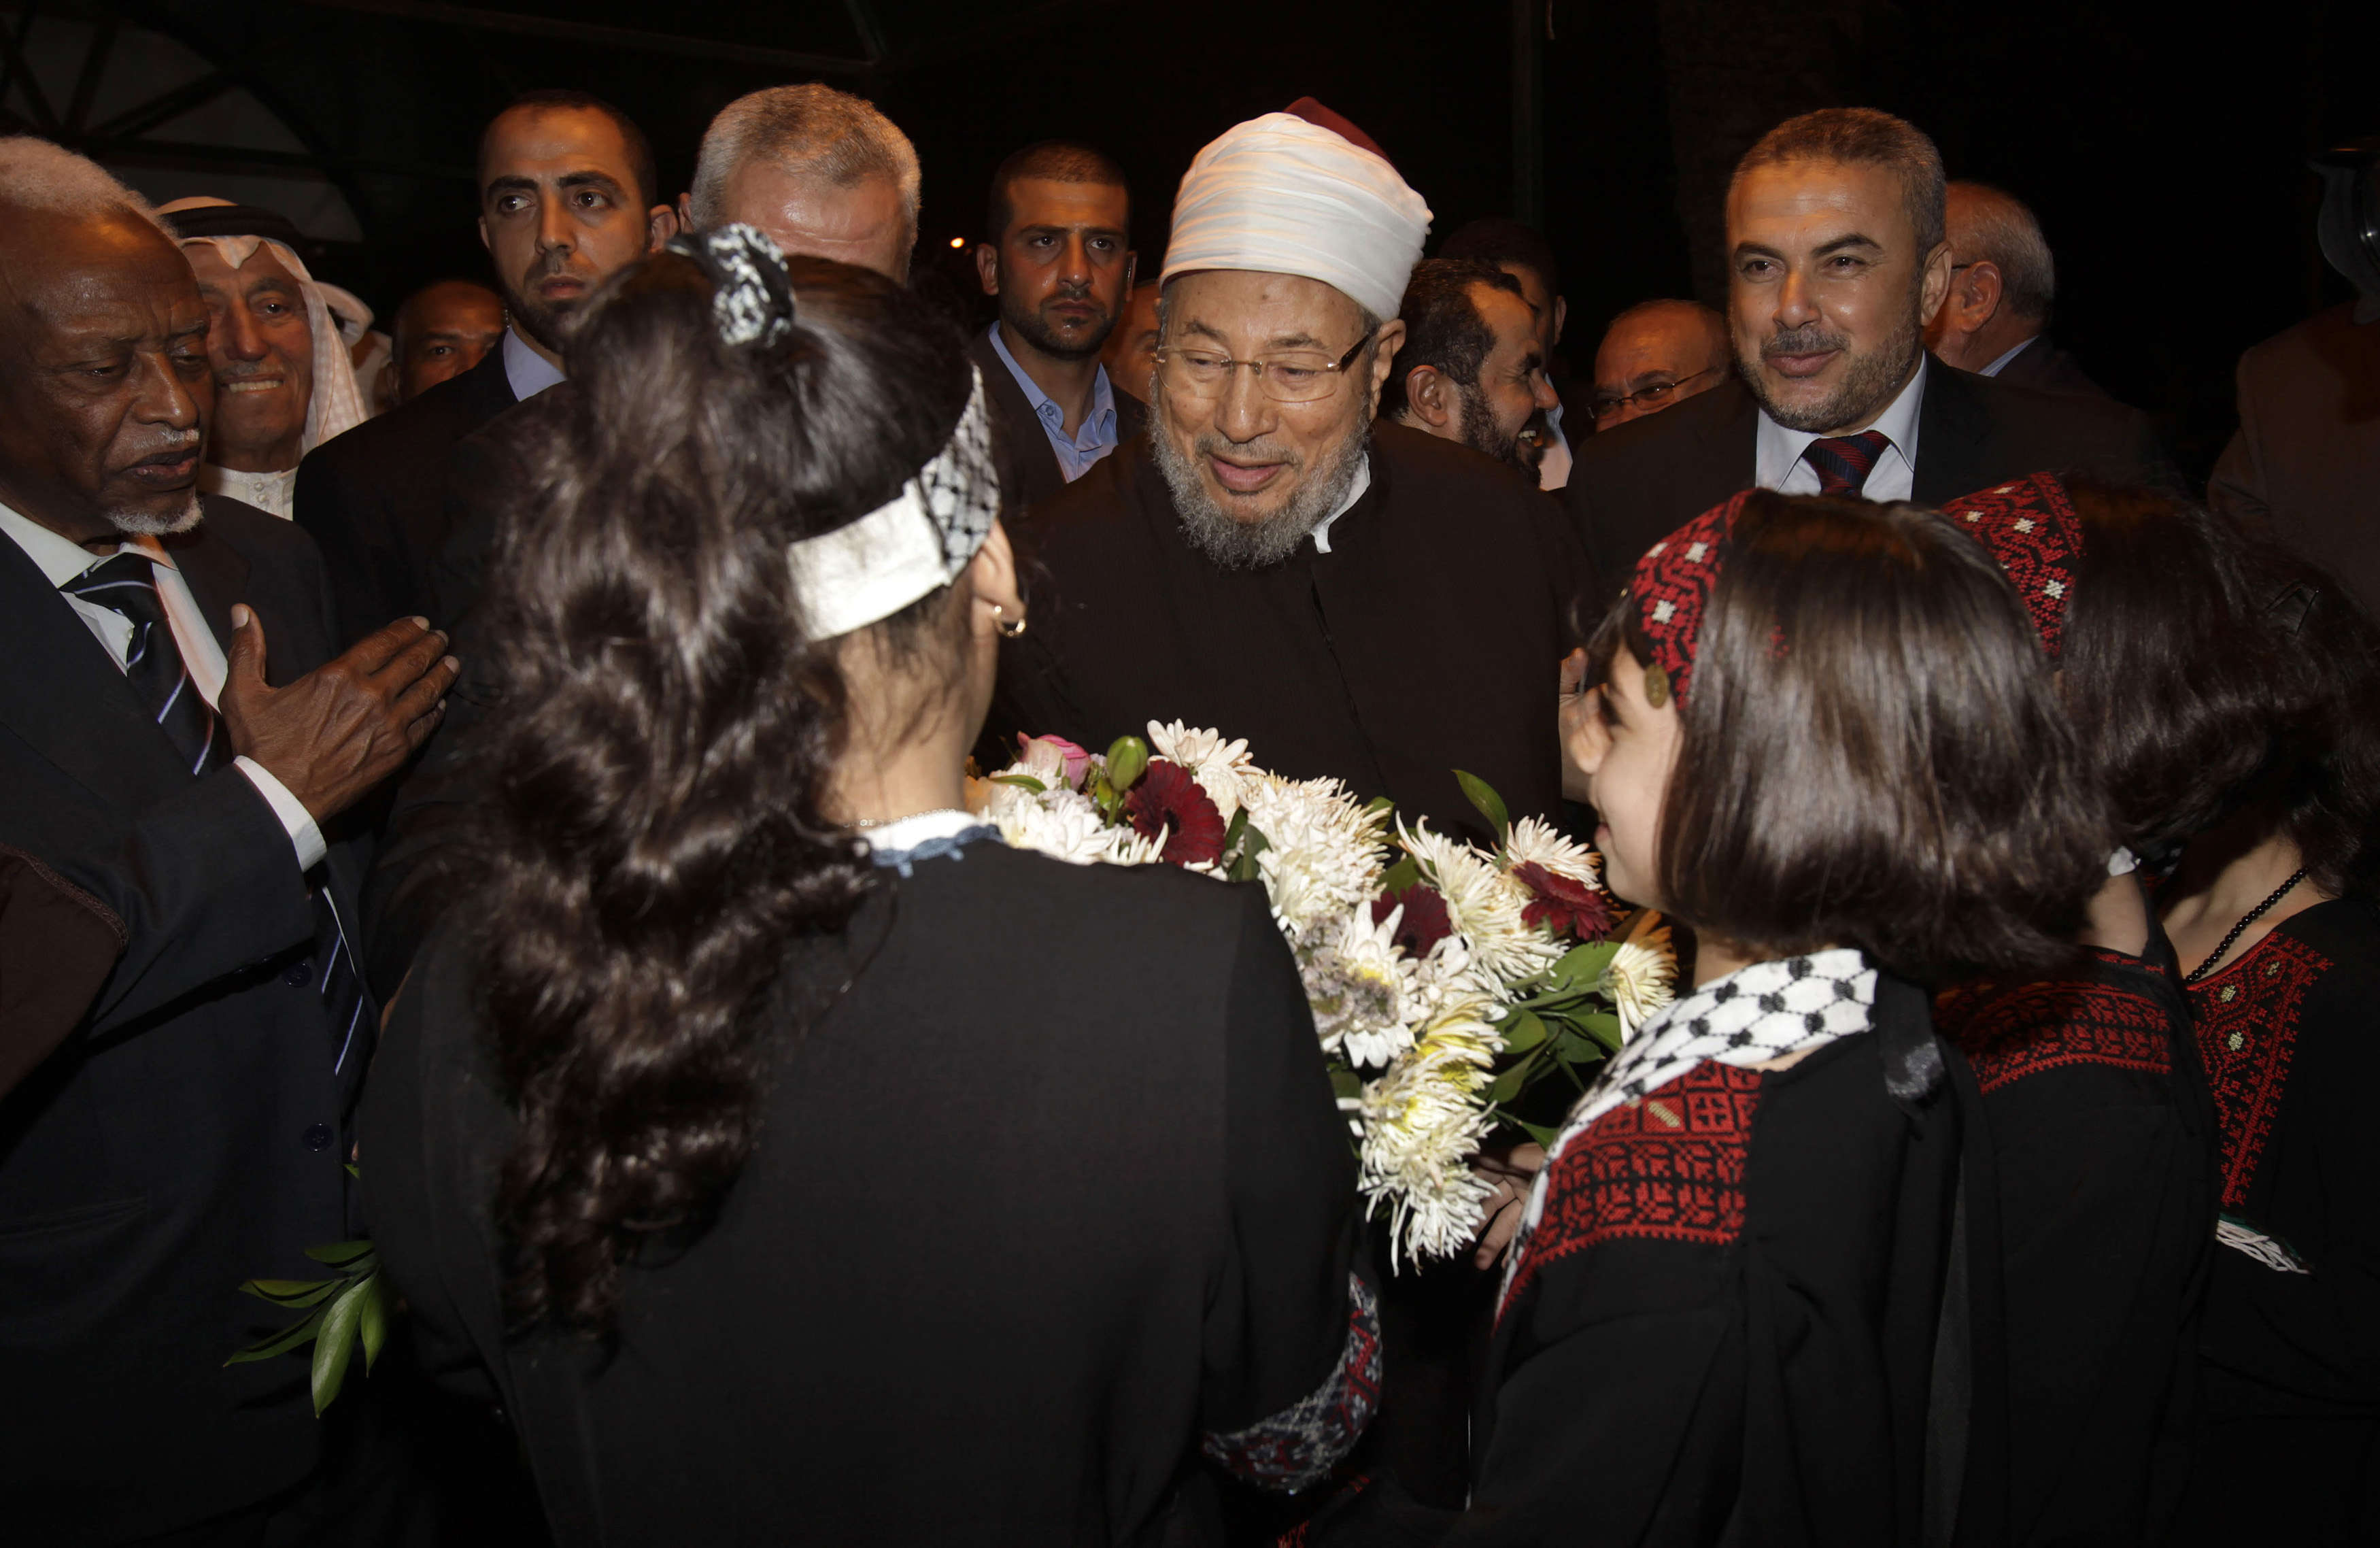 Egyptian Cleric and chairman of the International Union of Muslim Scholars Sheikh Yusuf al-Qaradawi receives flowers from Palestinian girls upon al-Qaradawi's arrival at Rafah Crossing in the southern Gaza Strip May 8, 2013. (Photo by REUTERS/Ibraheem Abu Mustafa)